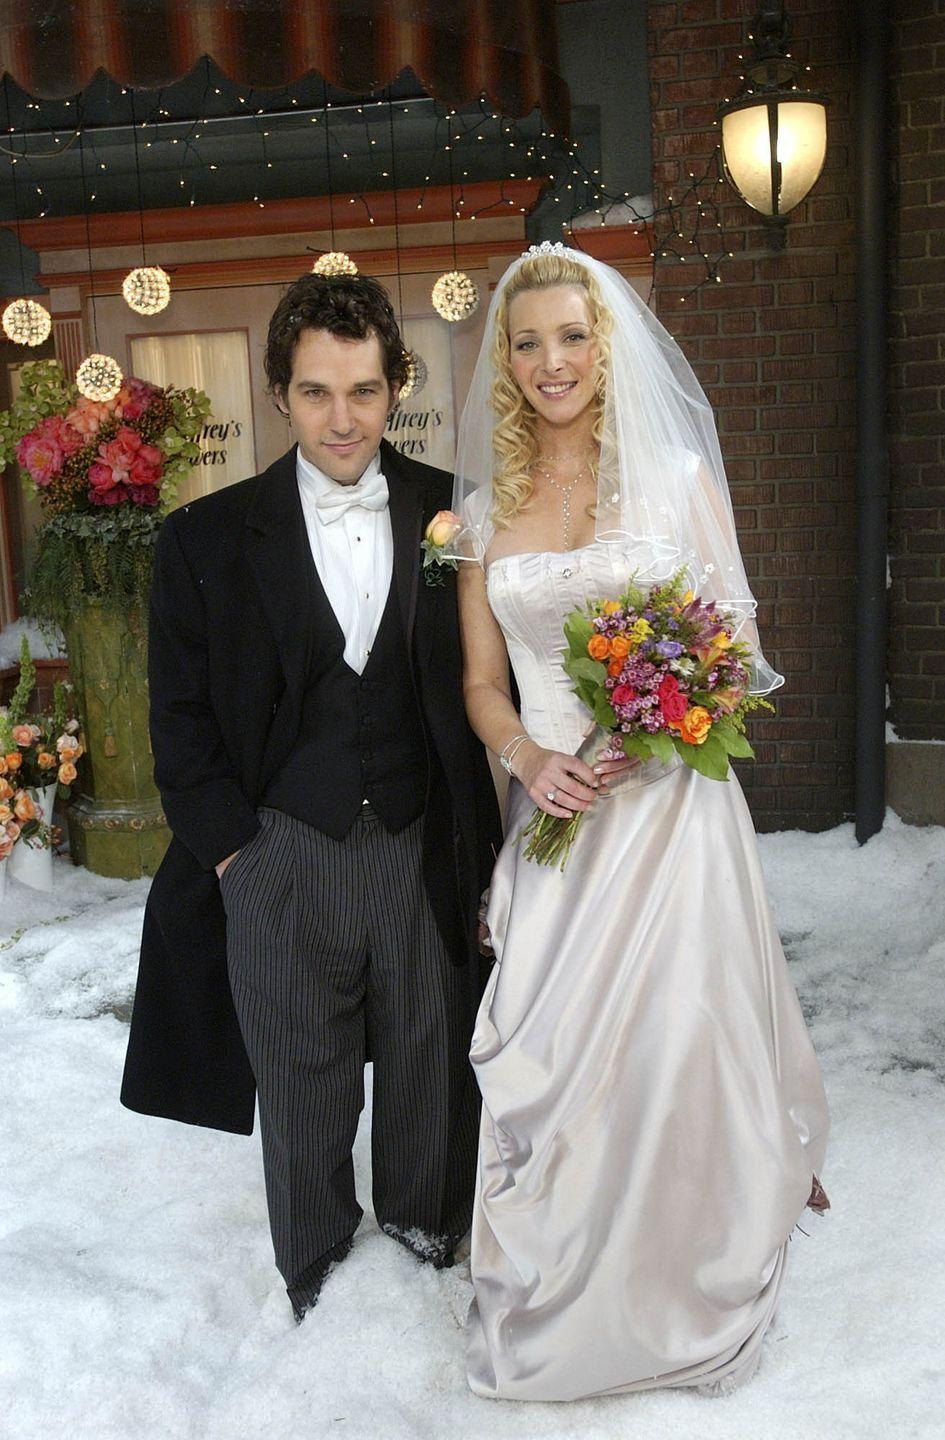 <p>Paul Rudd first appeared on the show as Phoebe's pianist boyfriend, Mike Hannigan, in season 9. After a brief breakup, Paul returns in season 10 and the two get married in the final season.</p>